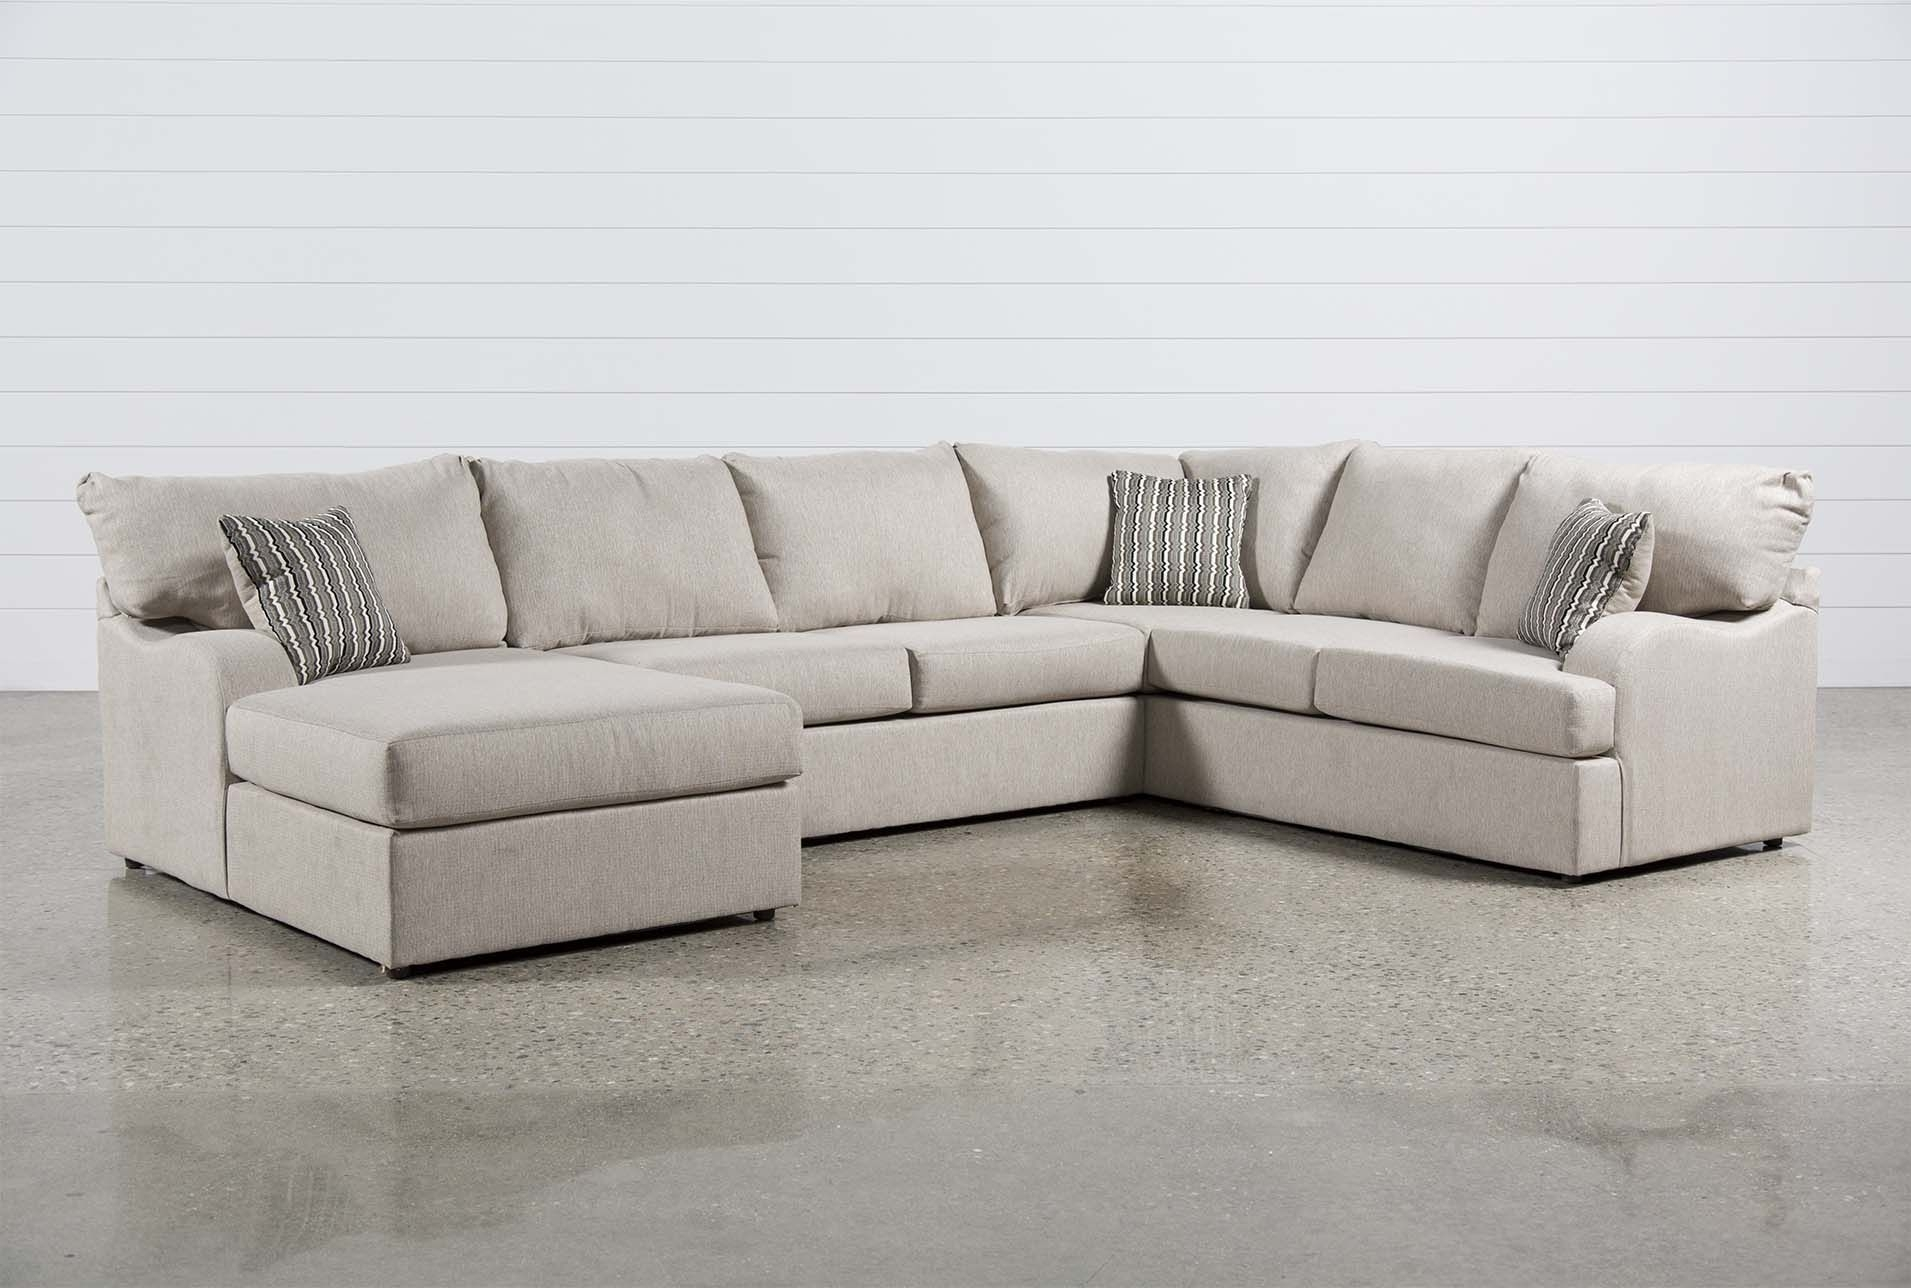 Meyer 3 Piece Sectional W/laf Chaise | Beige Sofa, Living Room pertaining to Harper Foam 3 Piece Sectionals With Raf Chaise (Image 16 of 30)